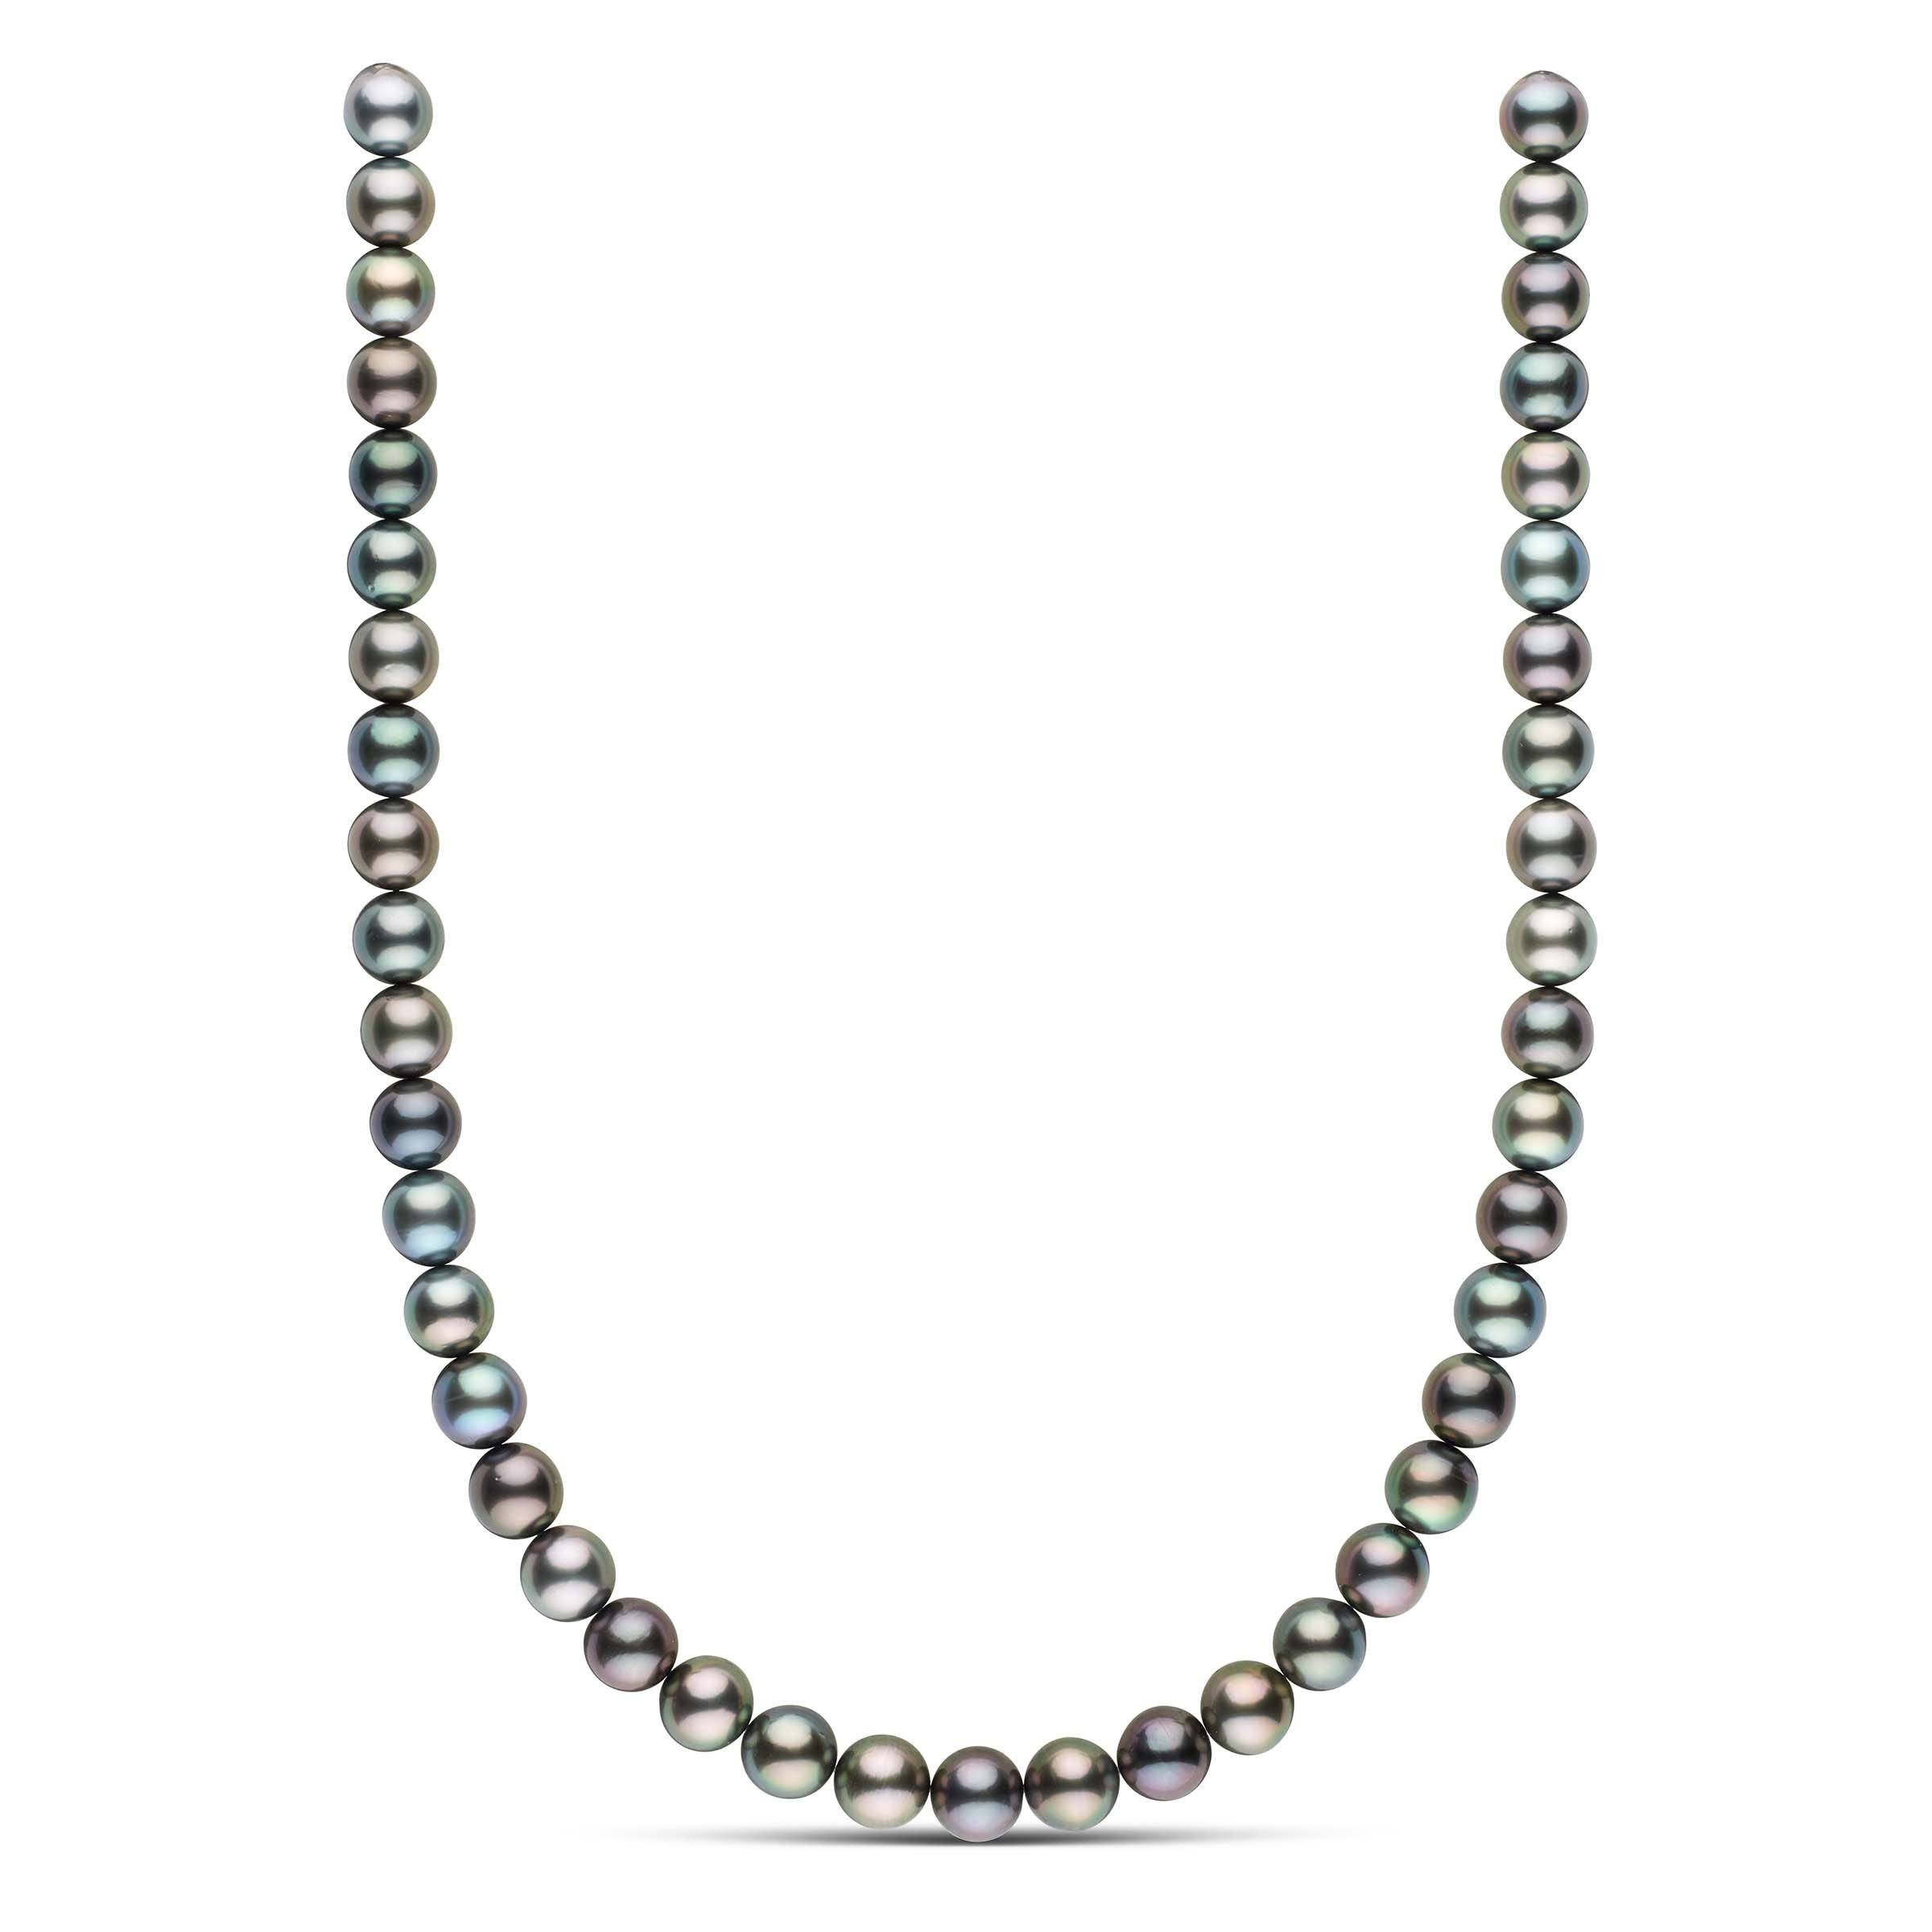 18-inch 9.4-9.9 mm AA+/AAA Round Tahitian Pearl Necklace